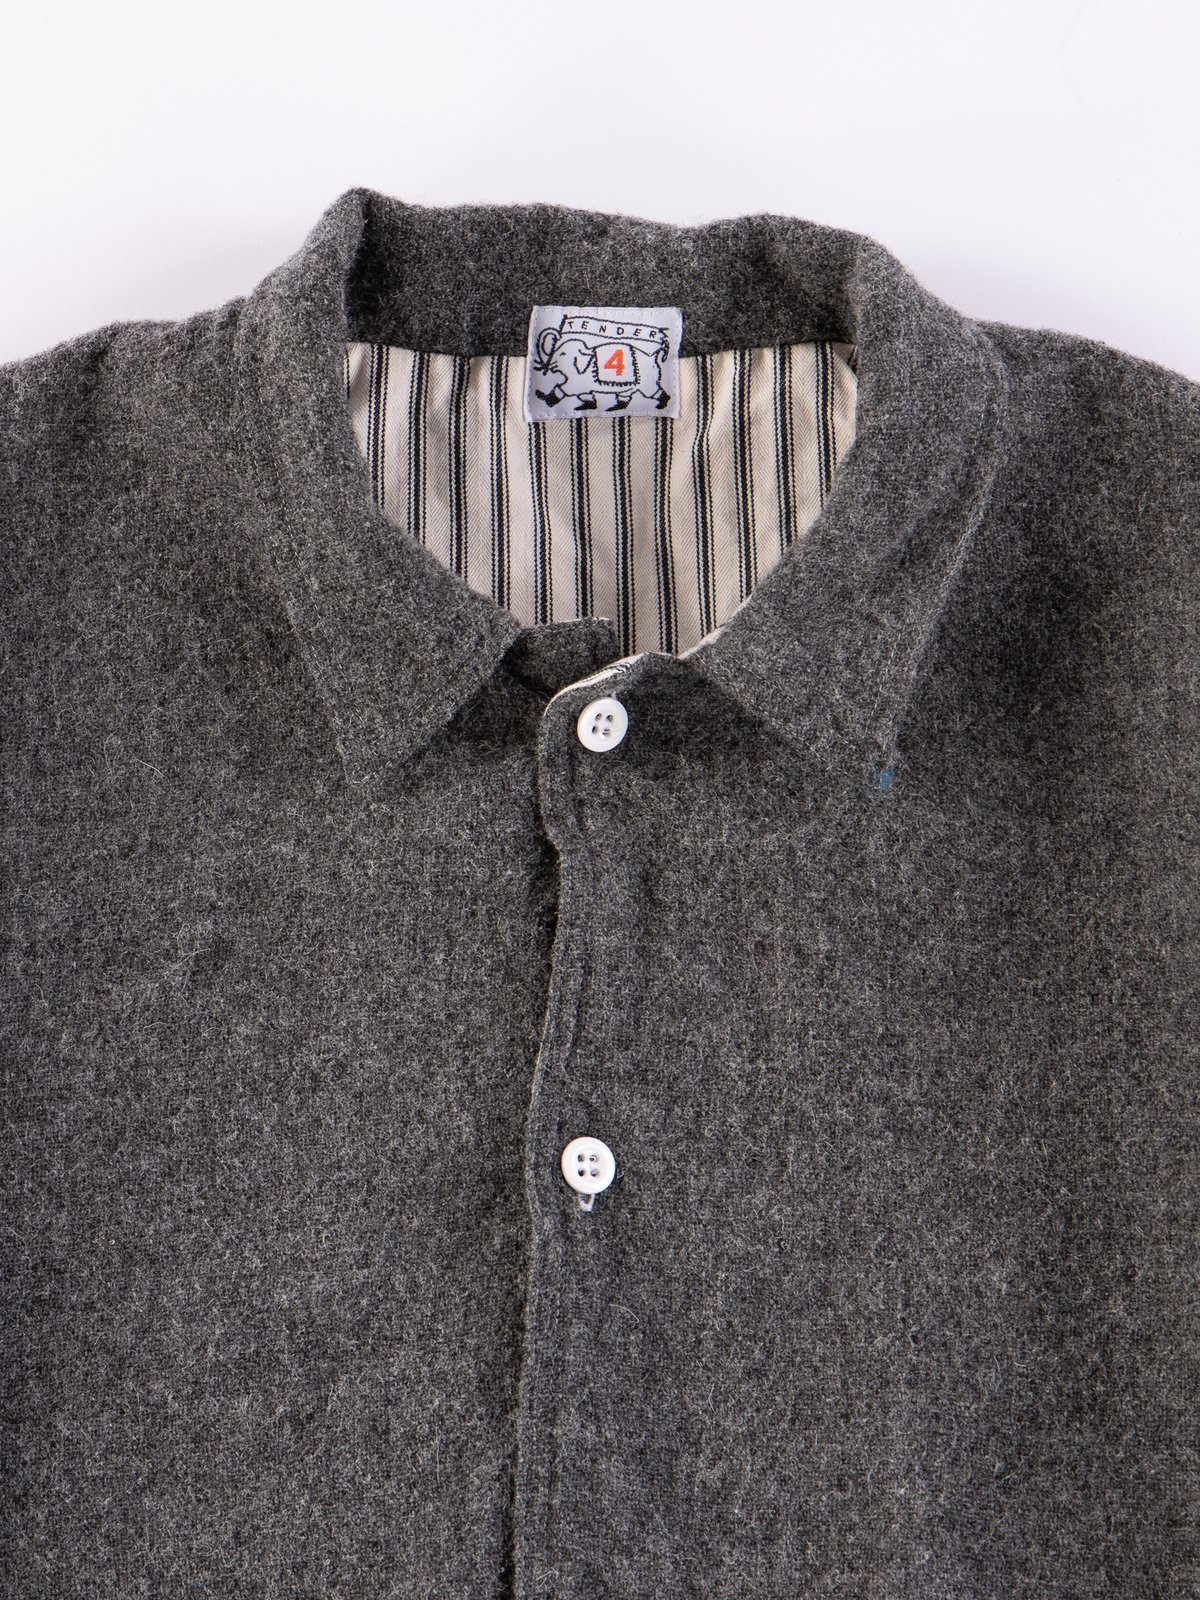 Charcoal Weavers Stock Curve Front Jacket - Image 3